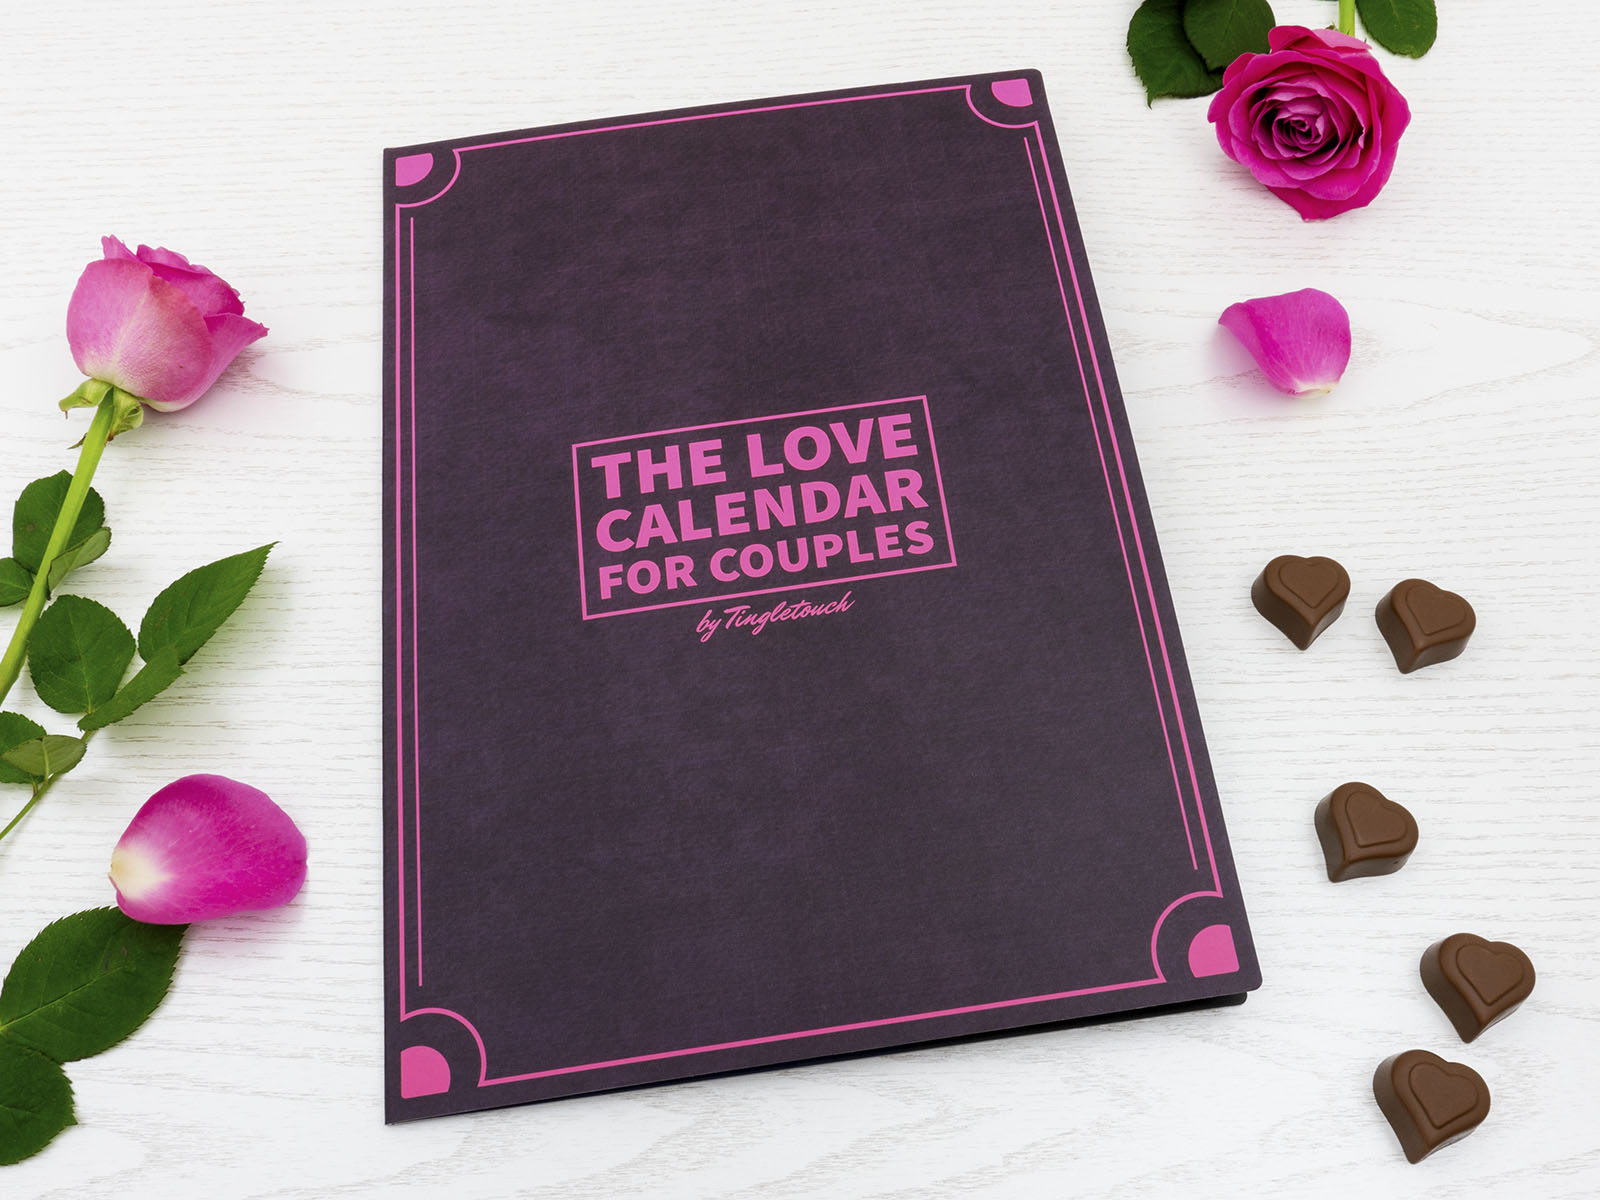 The Love Calendar for Couples - Front